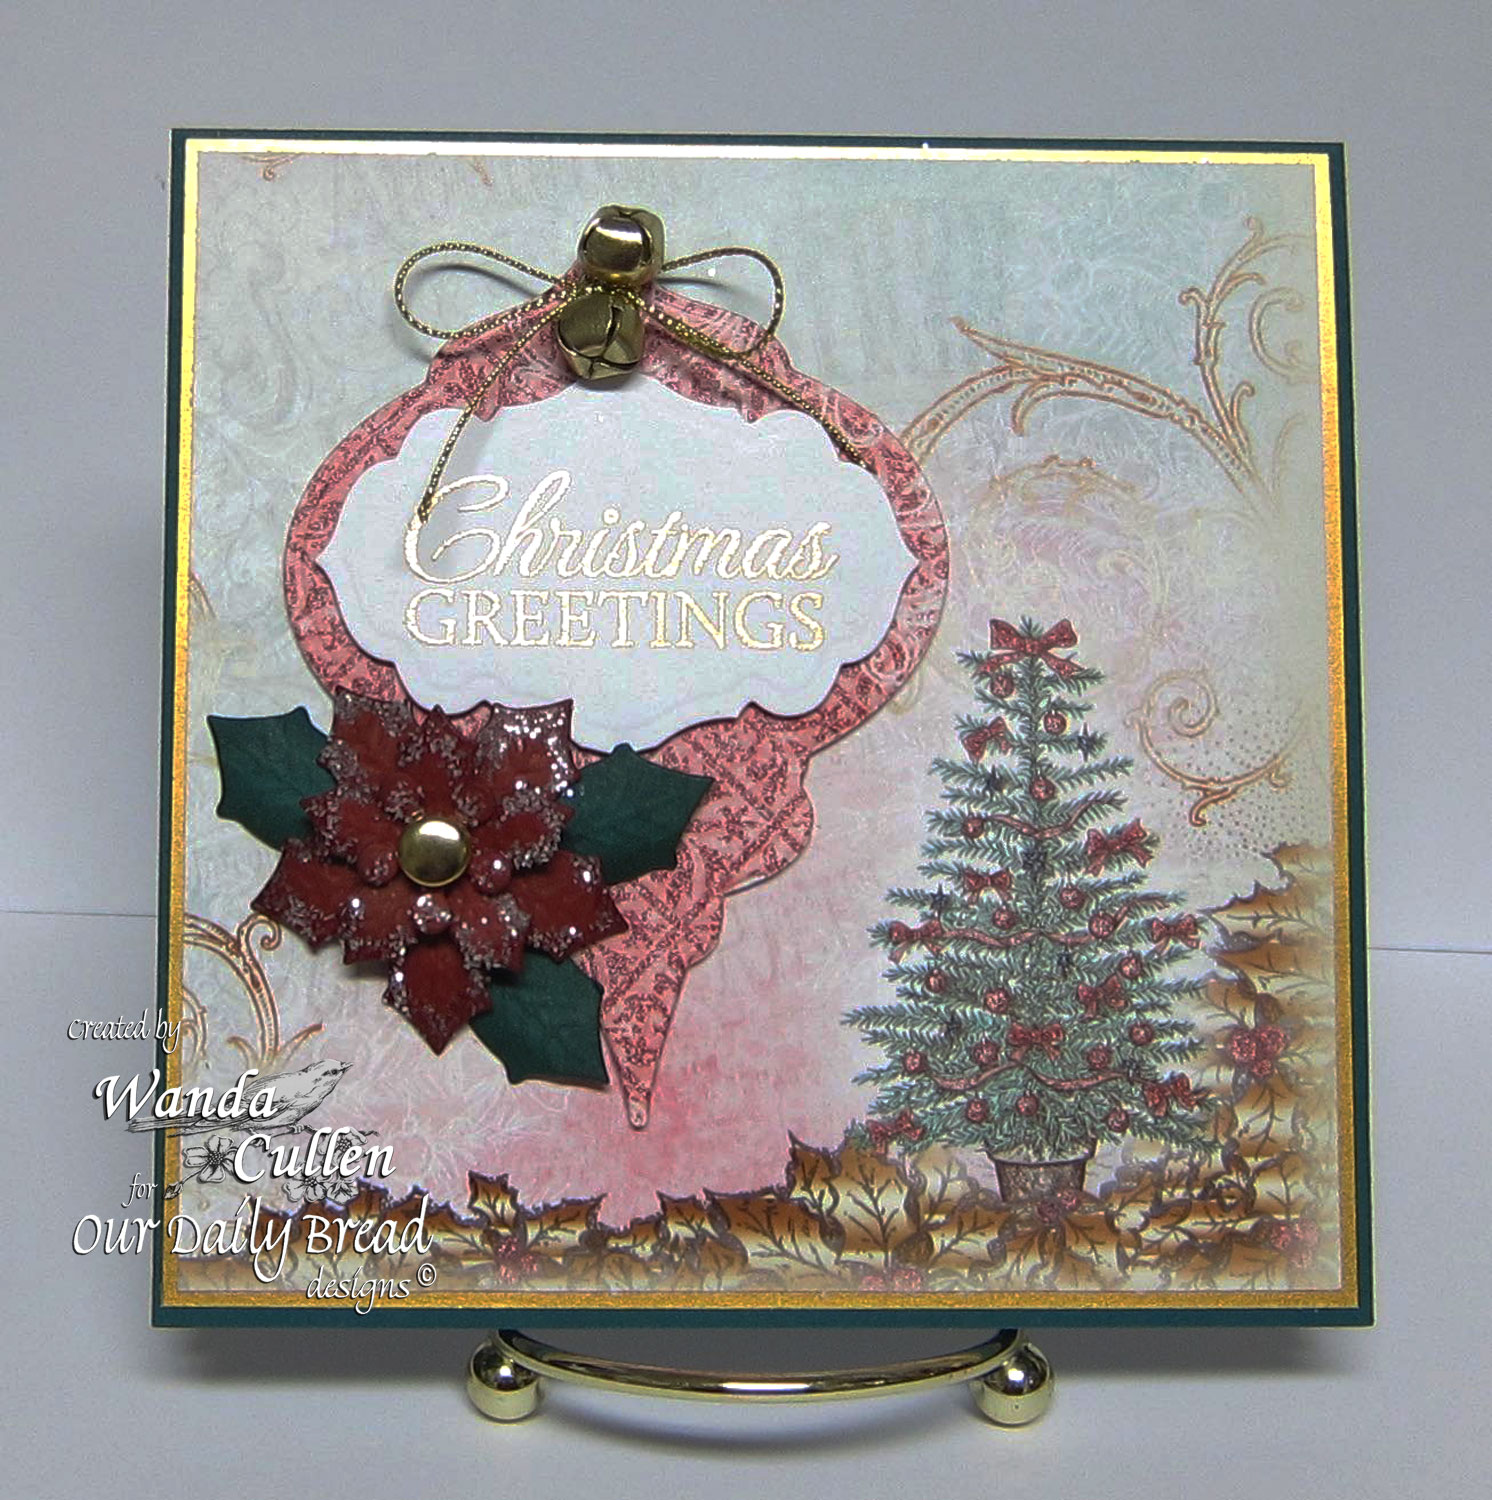 Stamps - Our Daily Bread Designs Let It Snow, ODBD Custom Peaceful Poinsettias Die, ODBD Custom Antique Labels and Border Dies, ODBD Christmas Paper Collection 2014